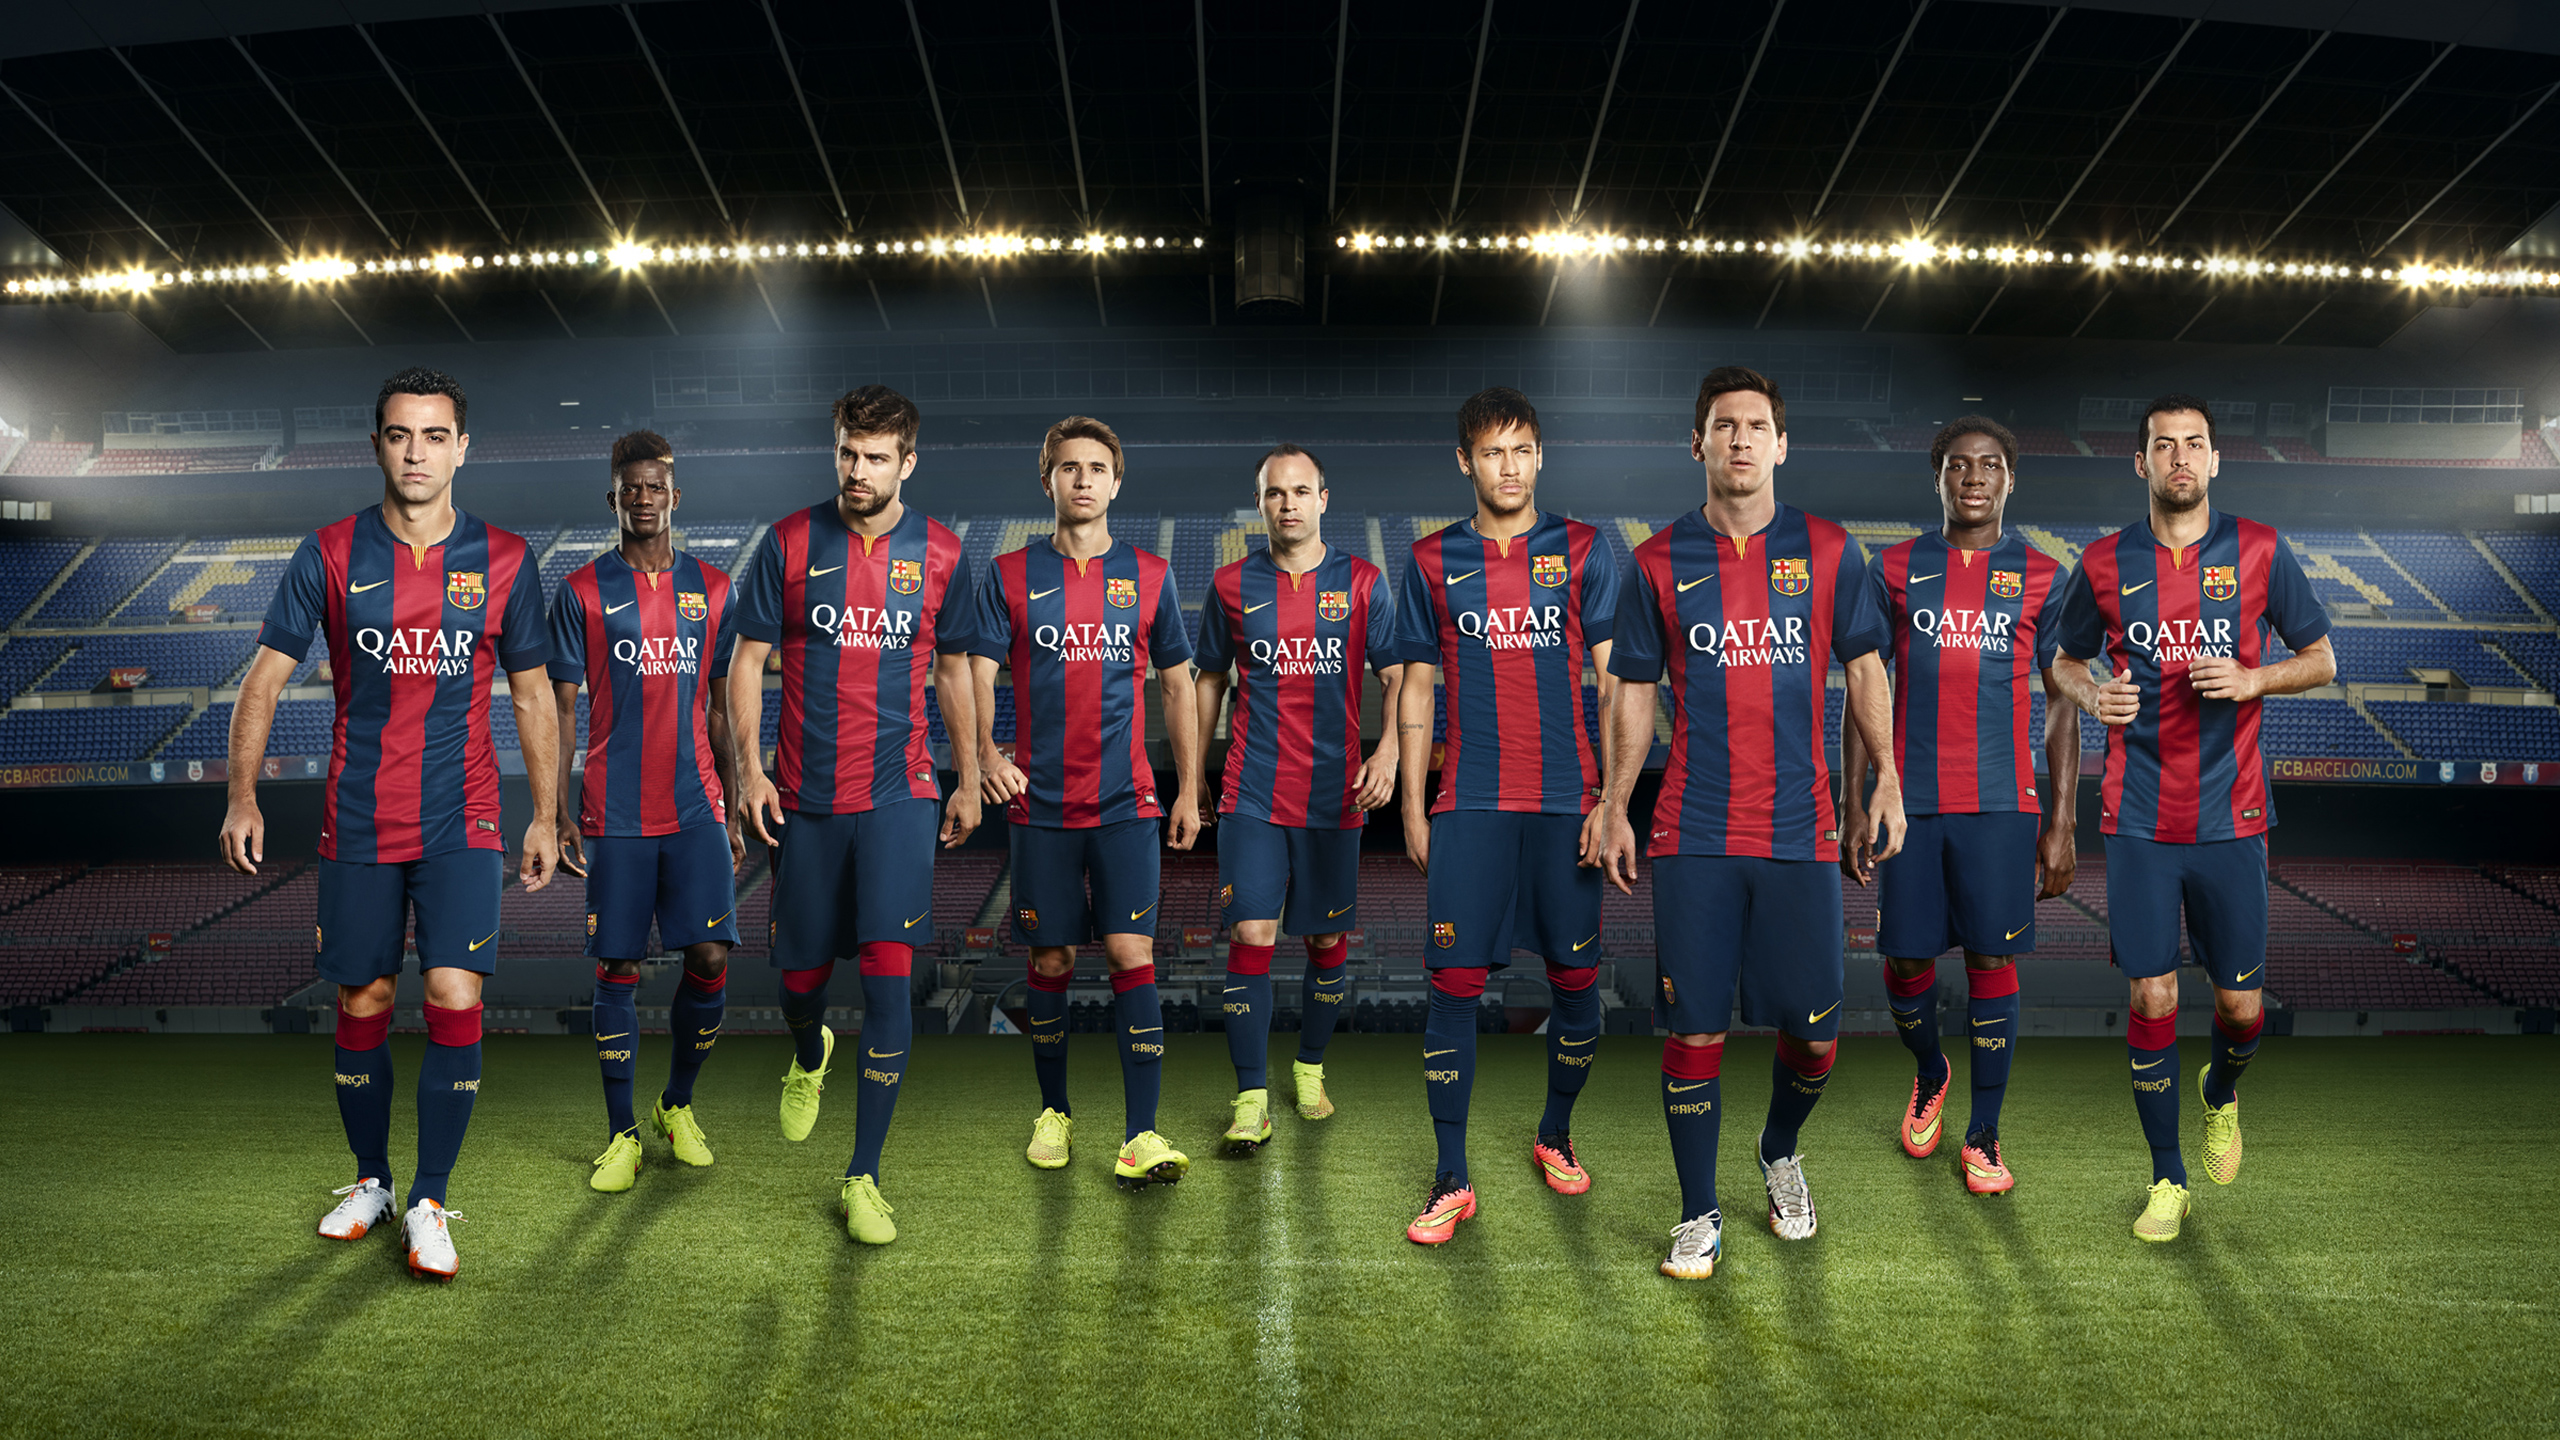 Download Fc Barcelona Wallpaper 4K